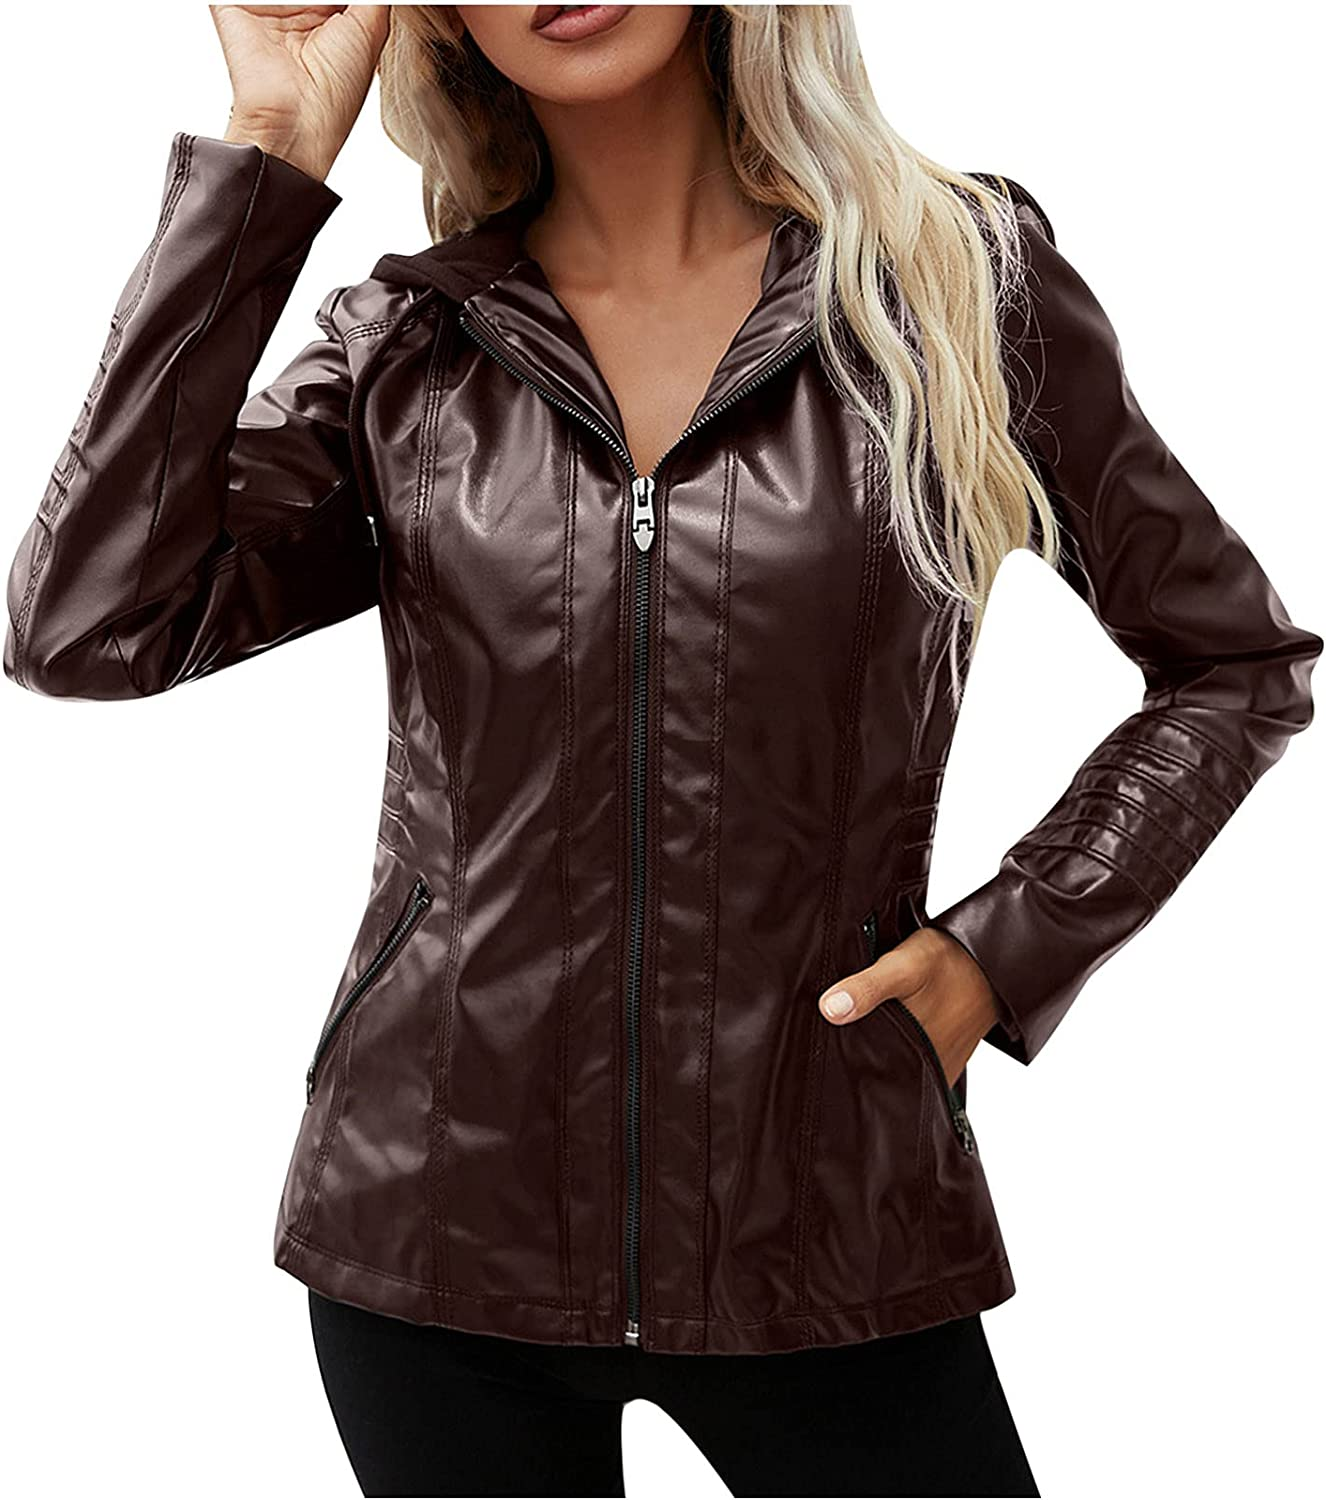 Auwer Women's Solid Zip up Jackets Leather Hooded Coats Plus Size Outerwear Solid Fashion Work Jacket with Pocket